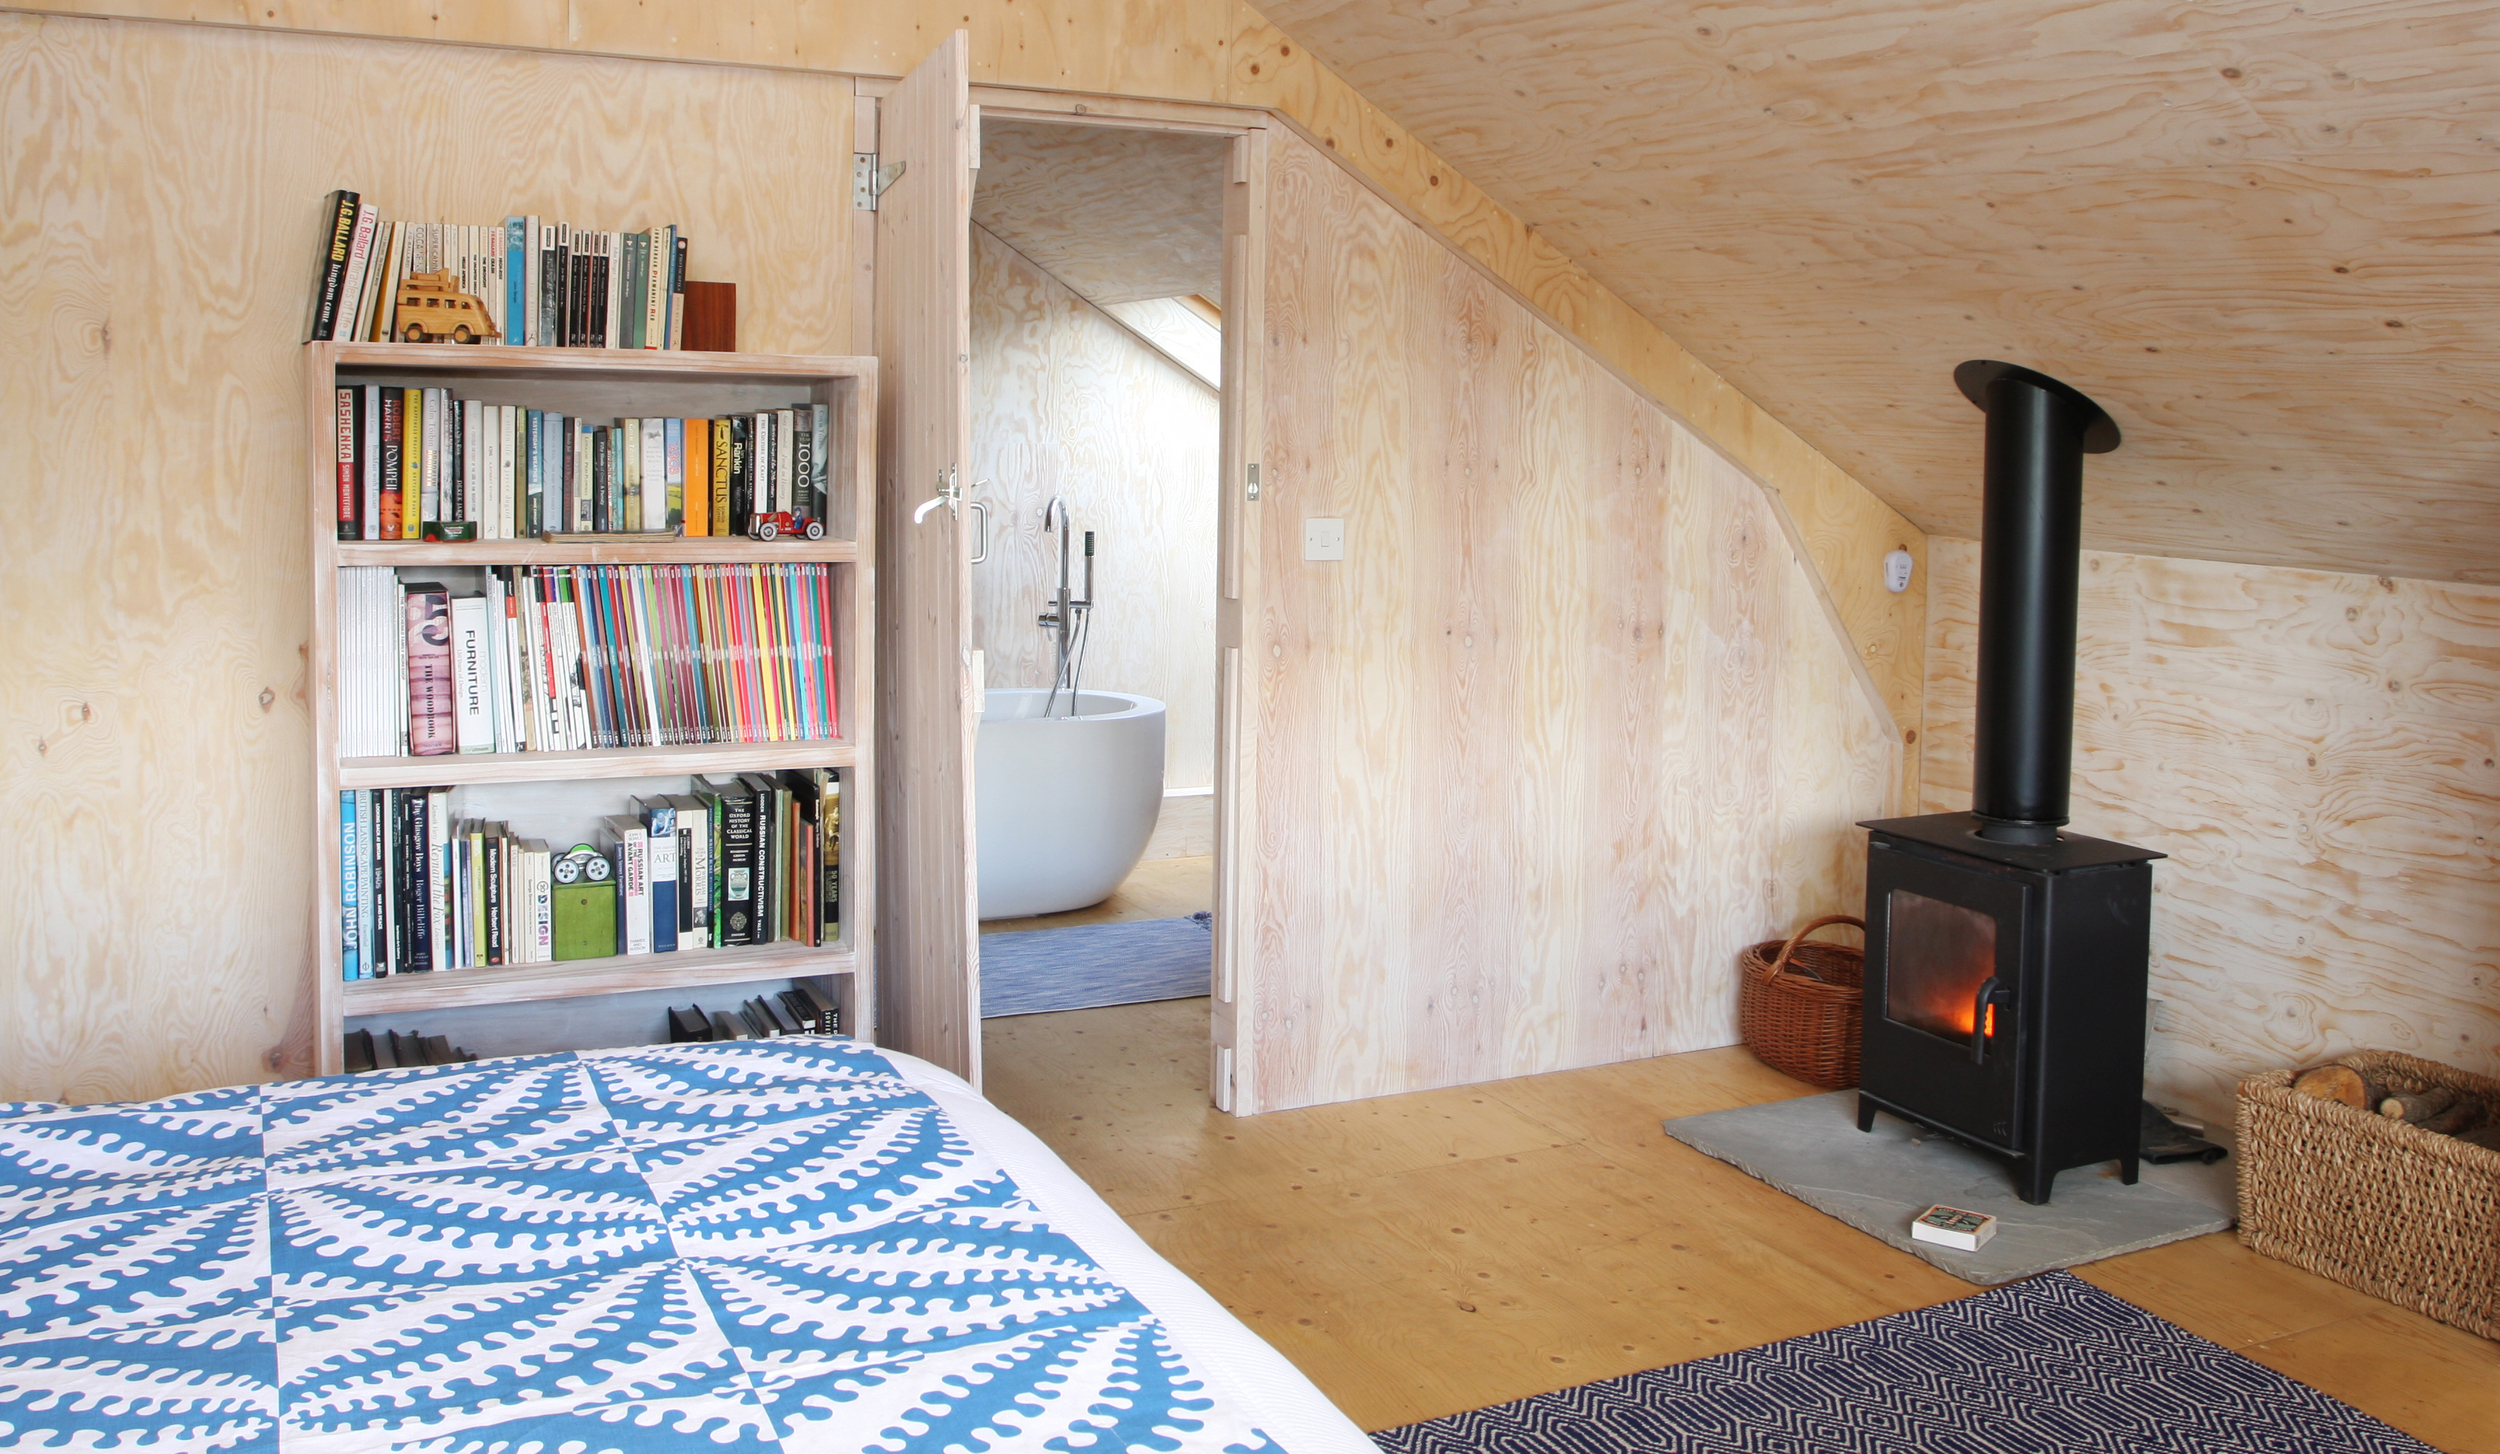 The en-suite bathroom has a freestanding bath positioned below a skylight, the wood-burning stove offers a romantic glow at any time of year.